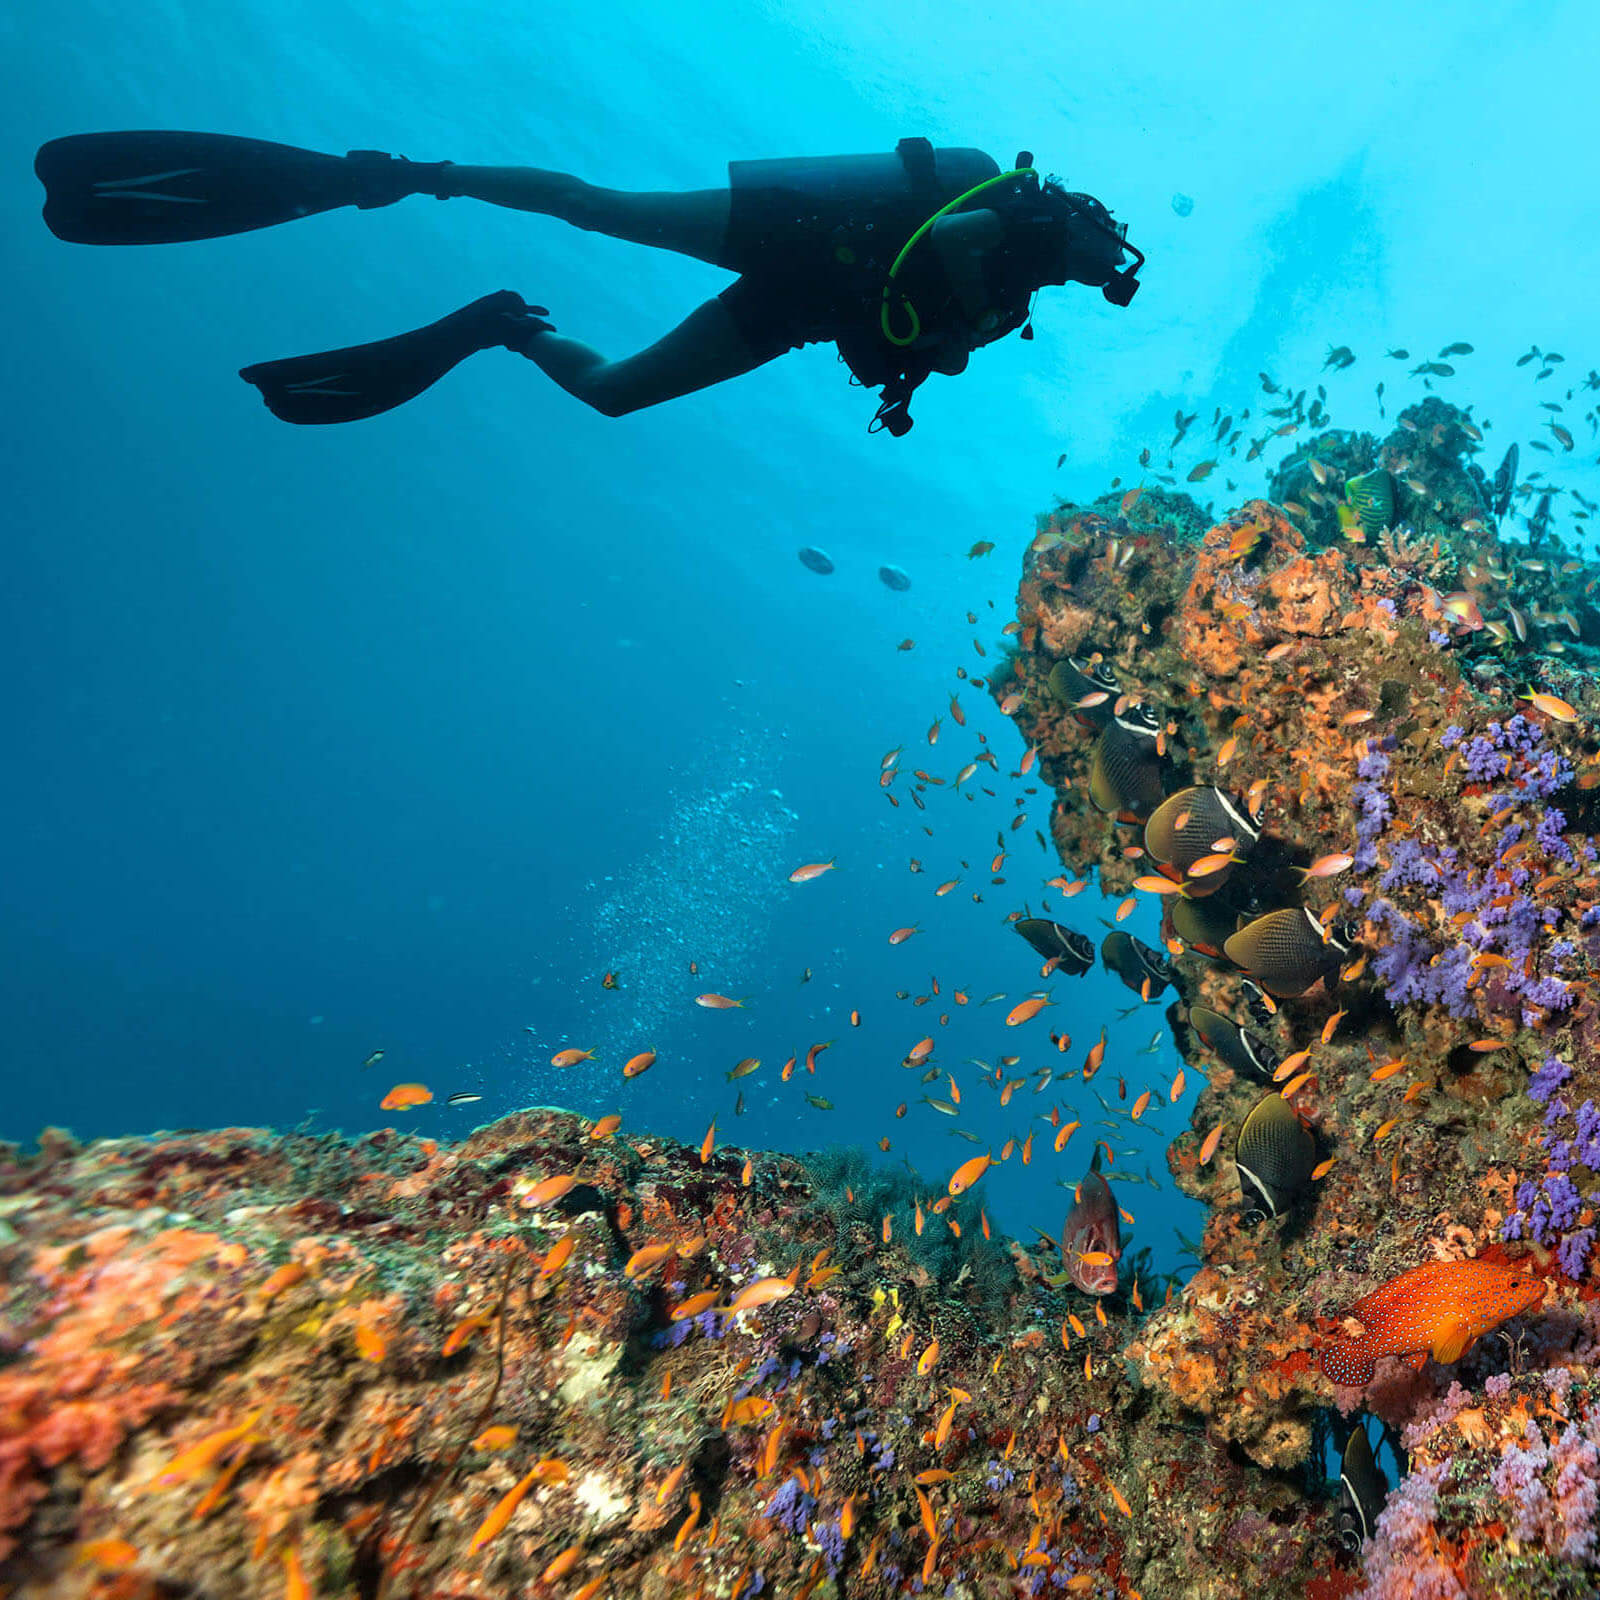 diver among the coral